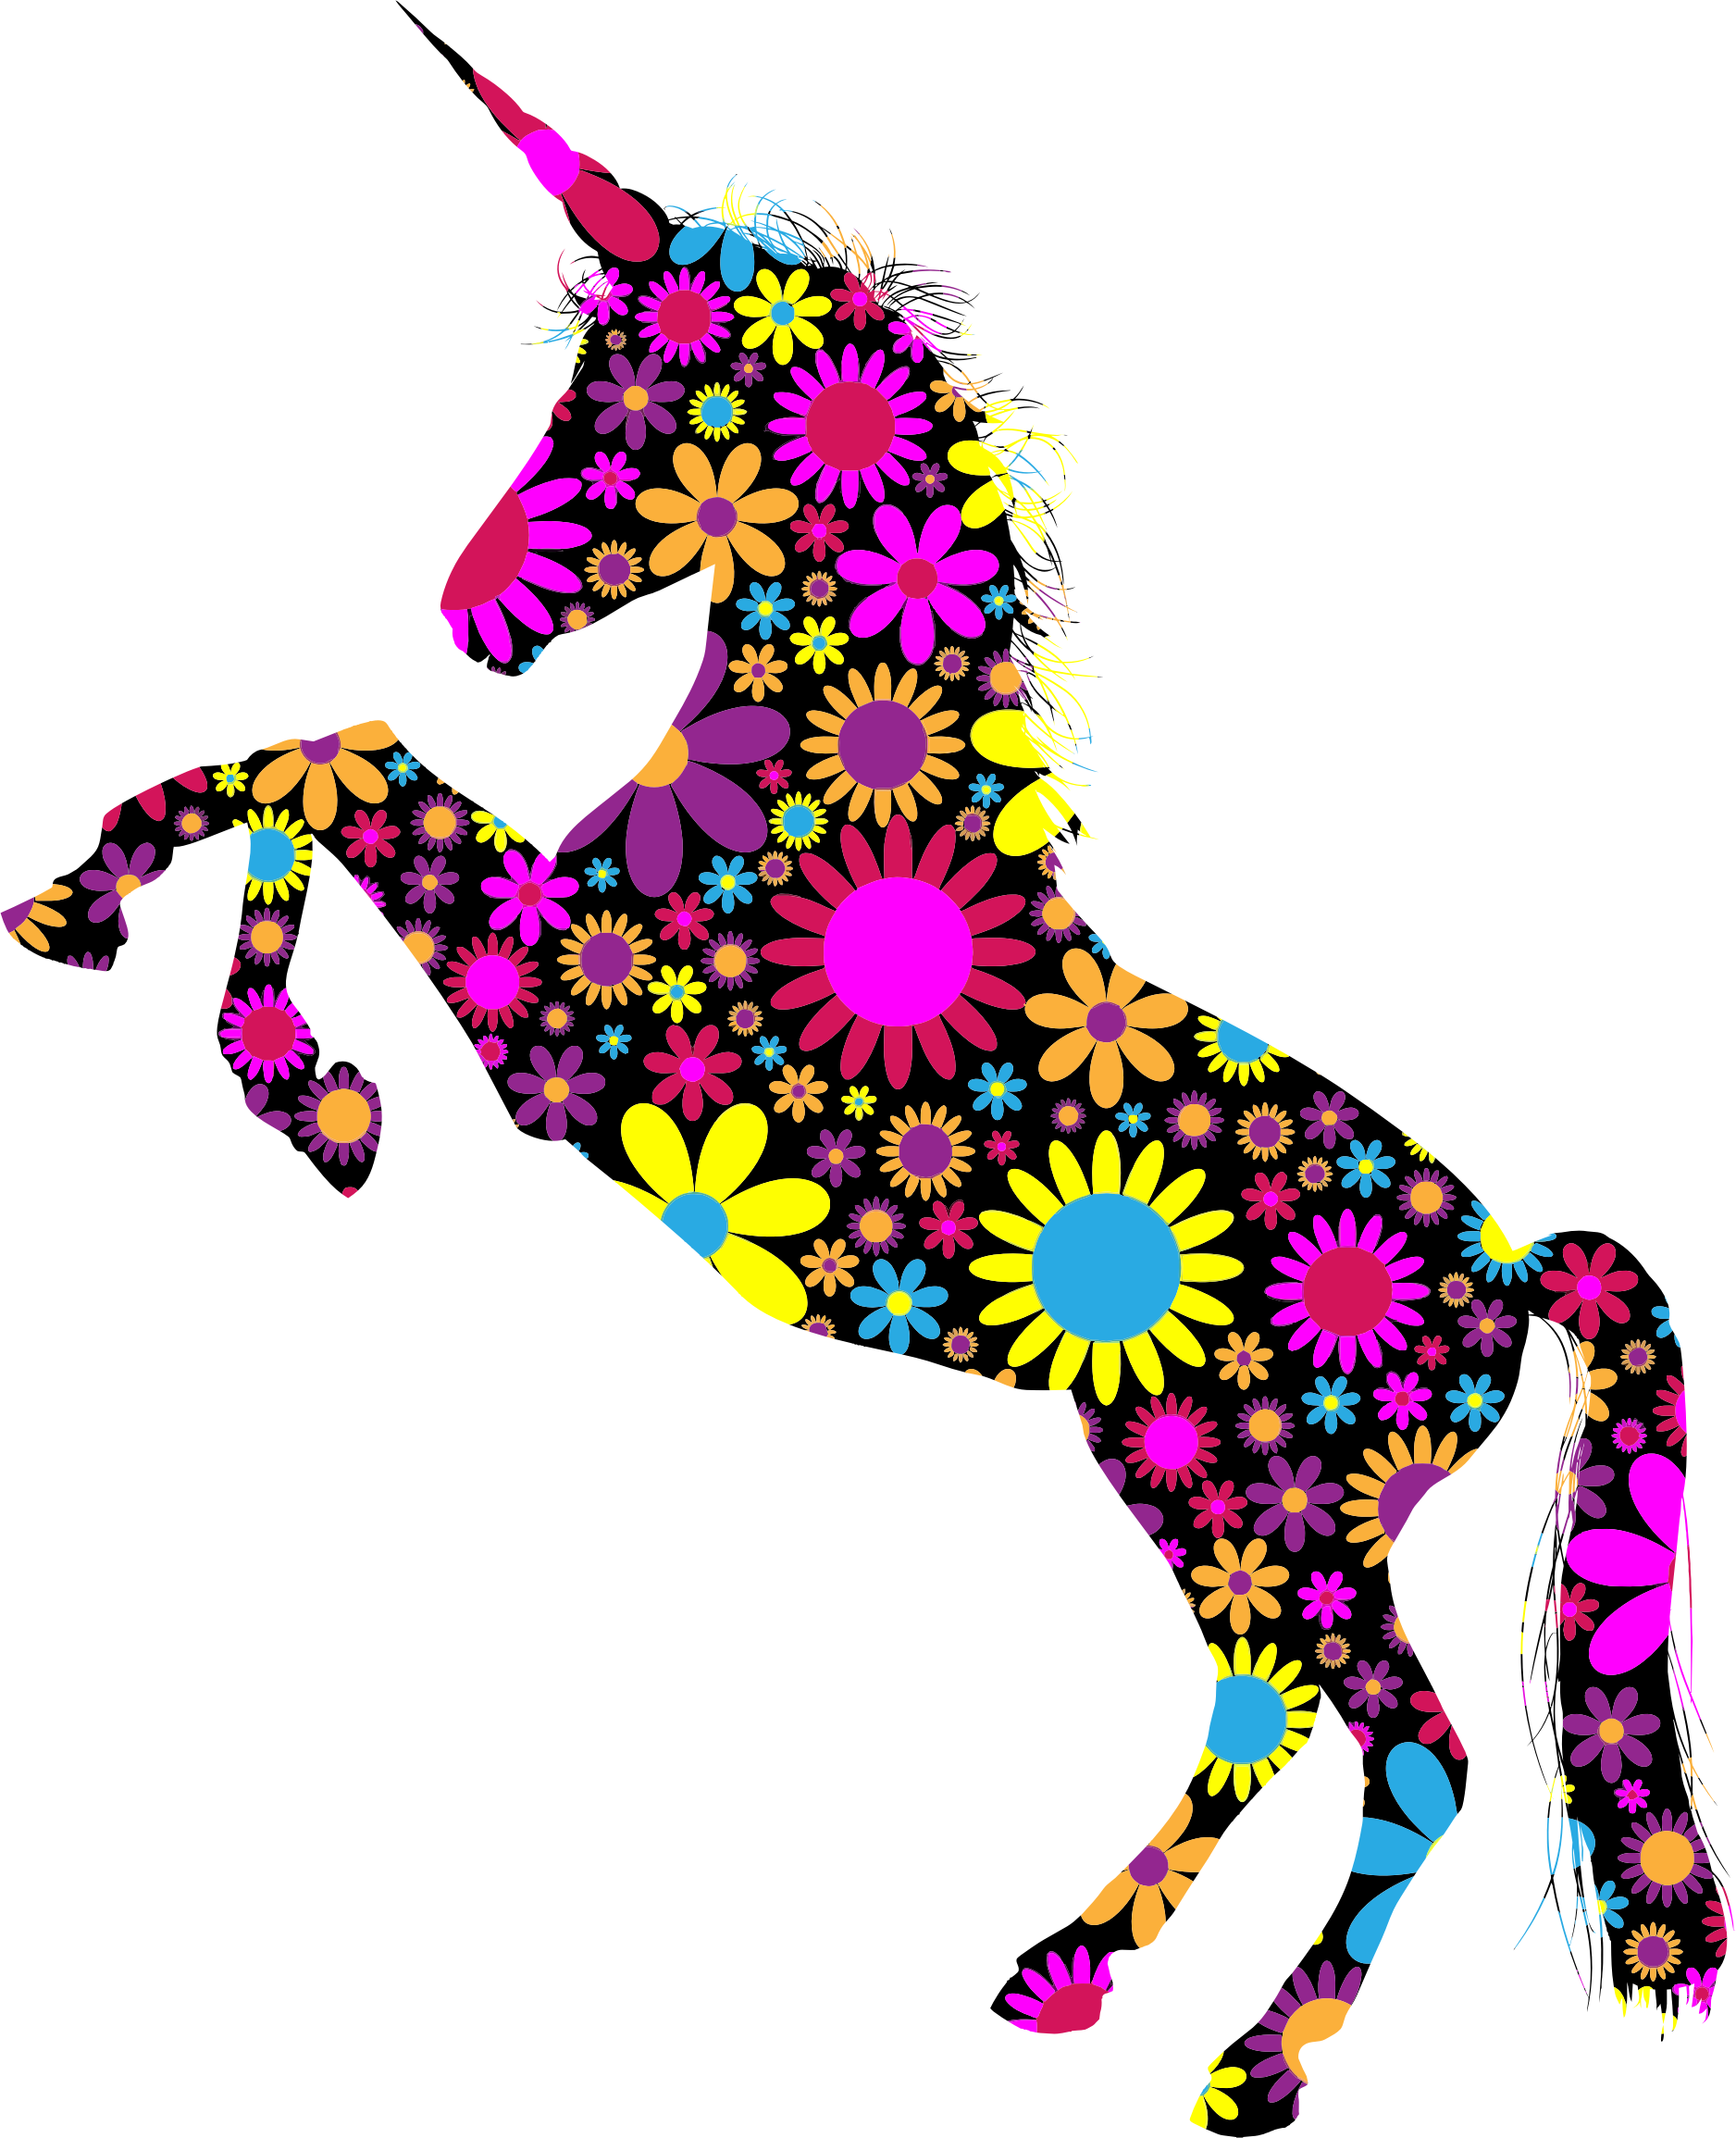 Floral Unicorn Silhouette by GDJ